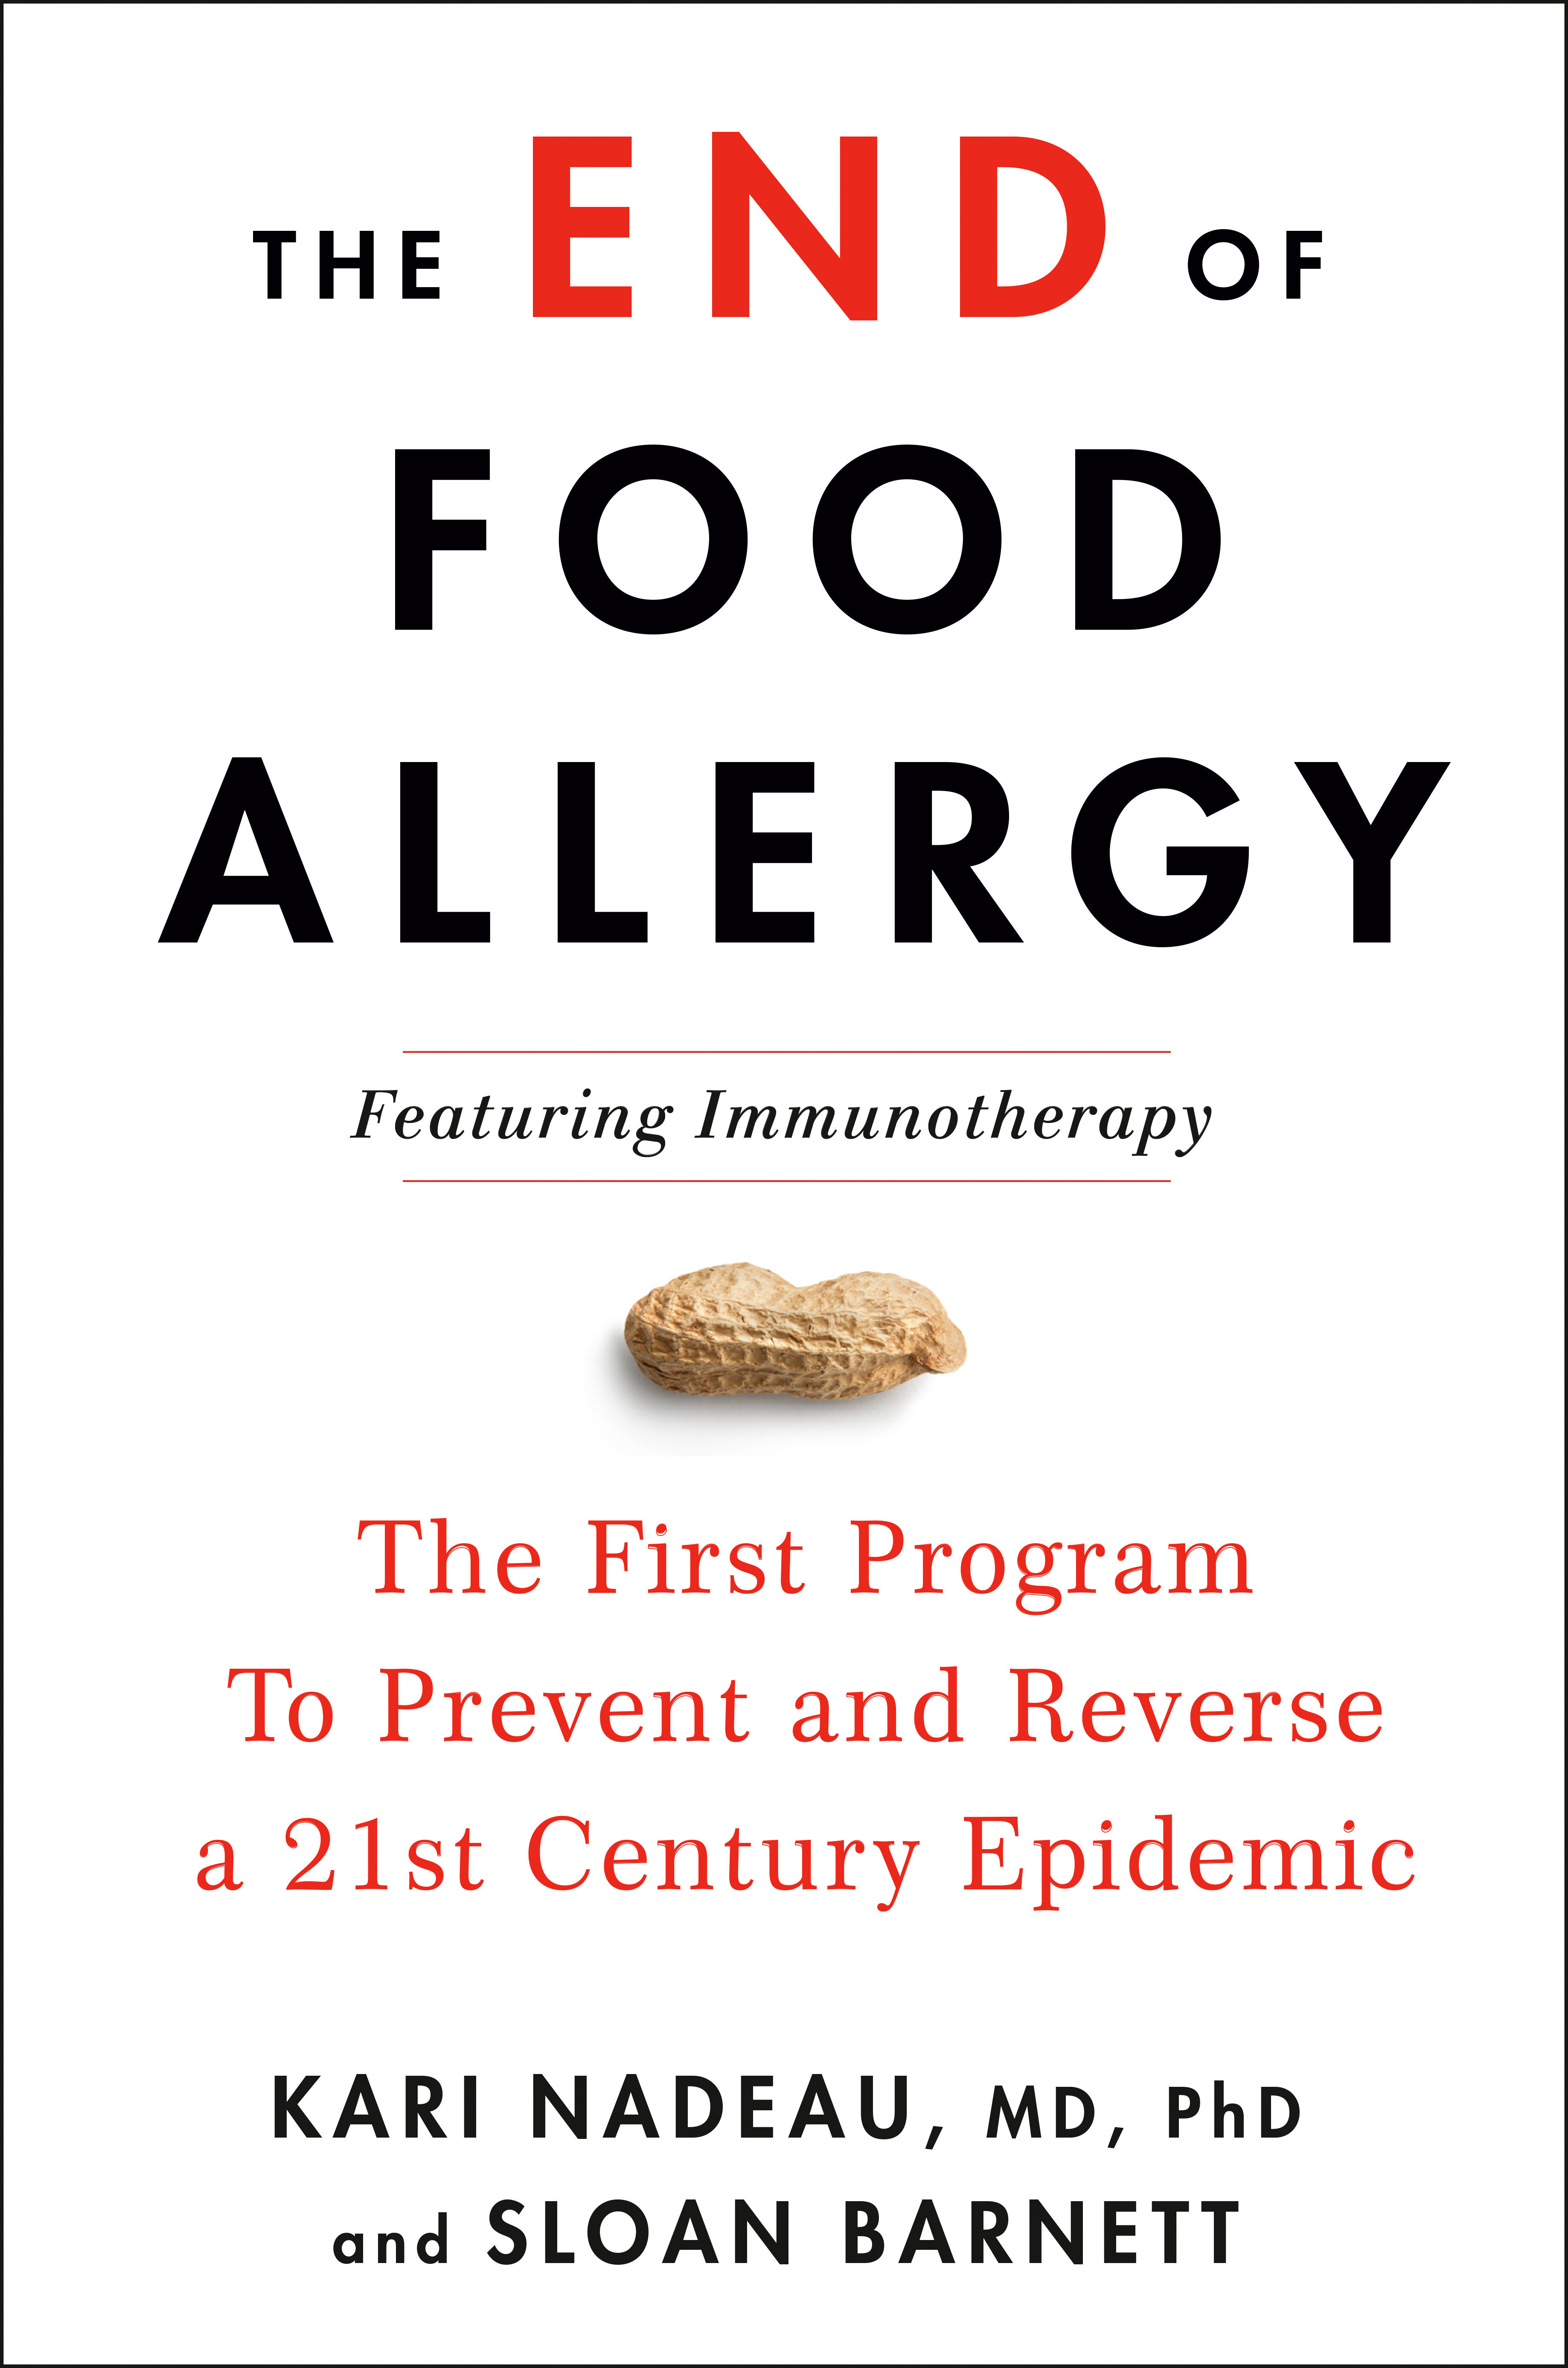 The End of Food Allergy The First Program To Prevent and Reverse a 21st Century Epidemic